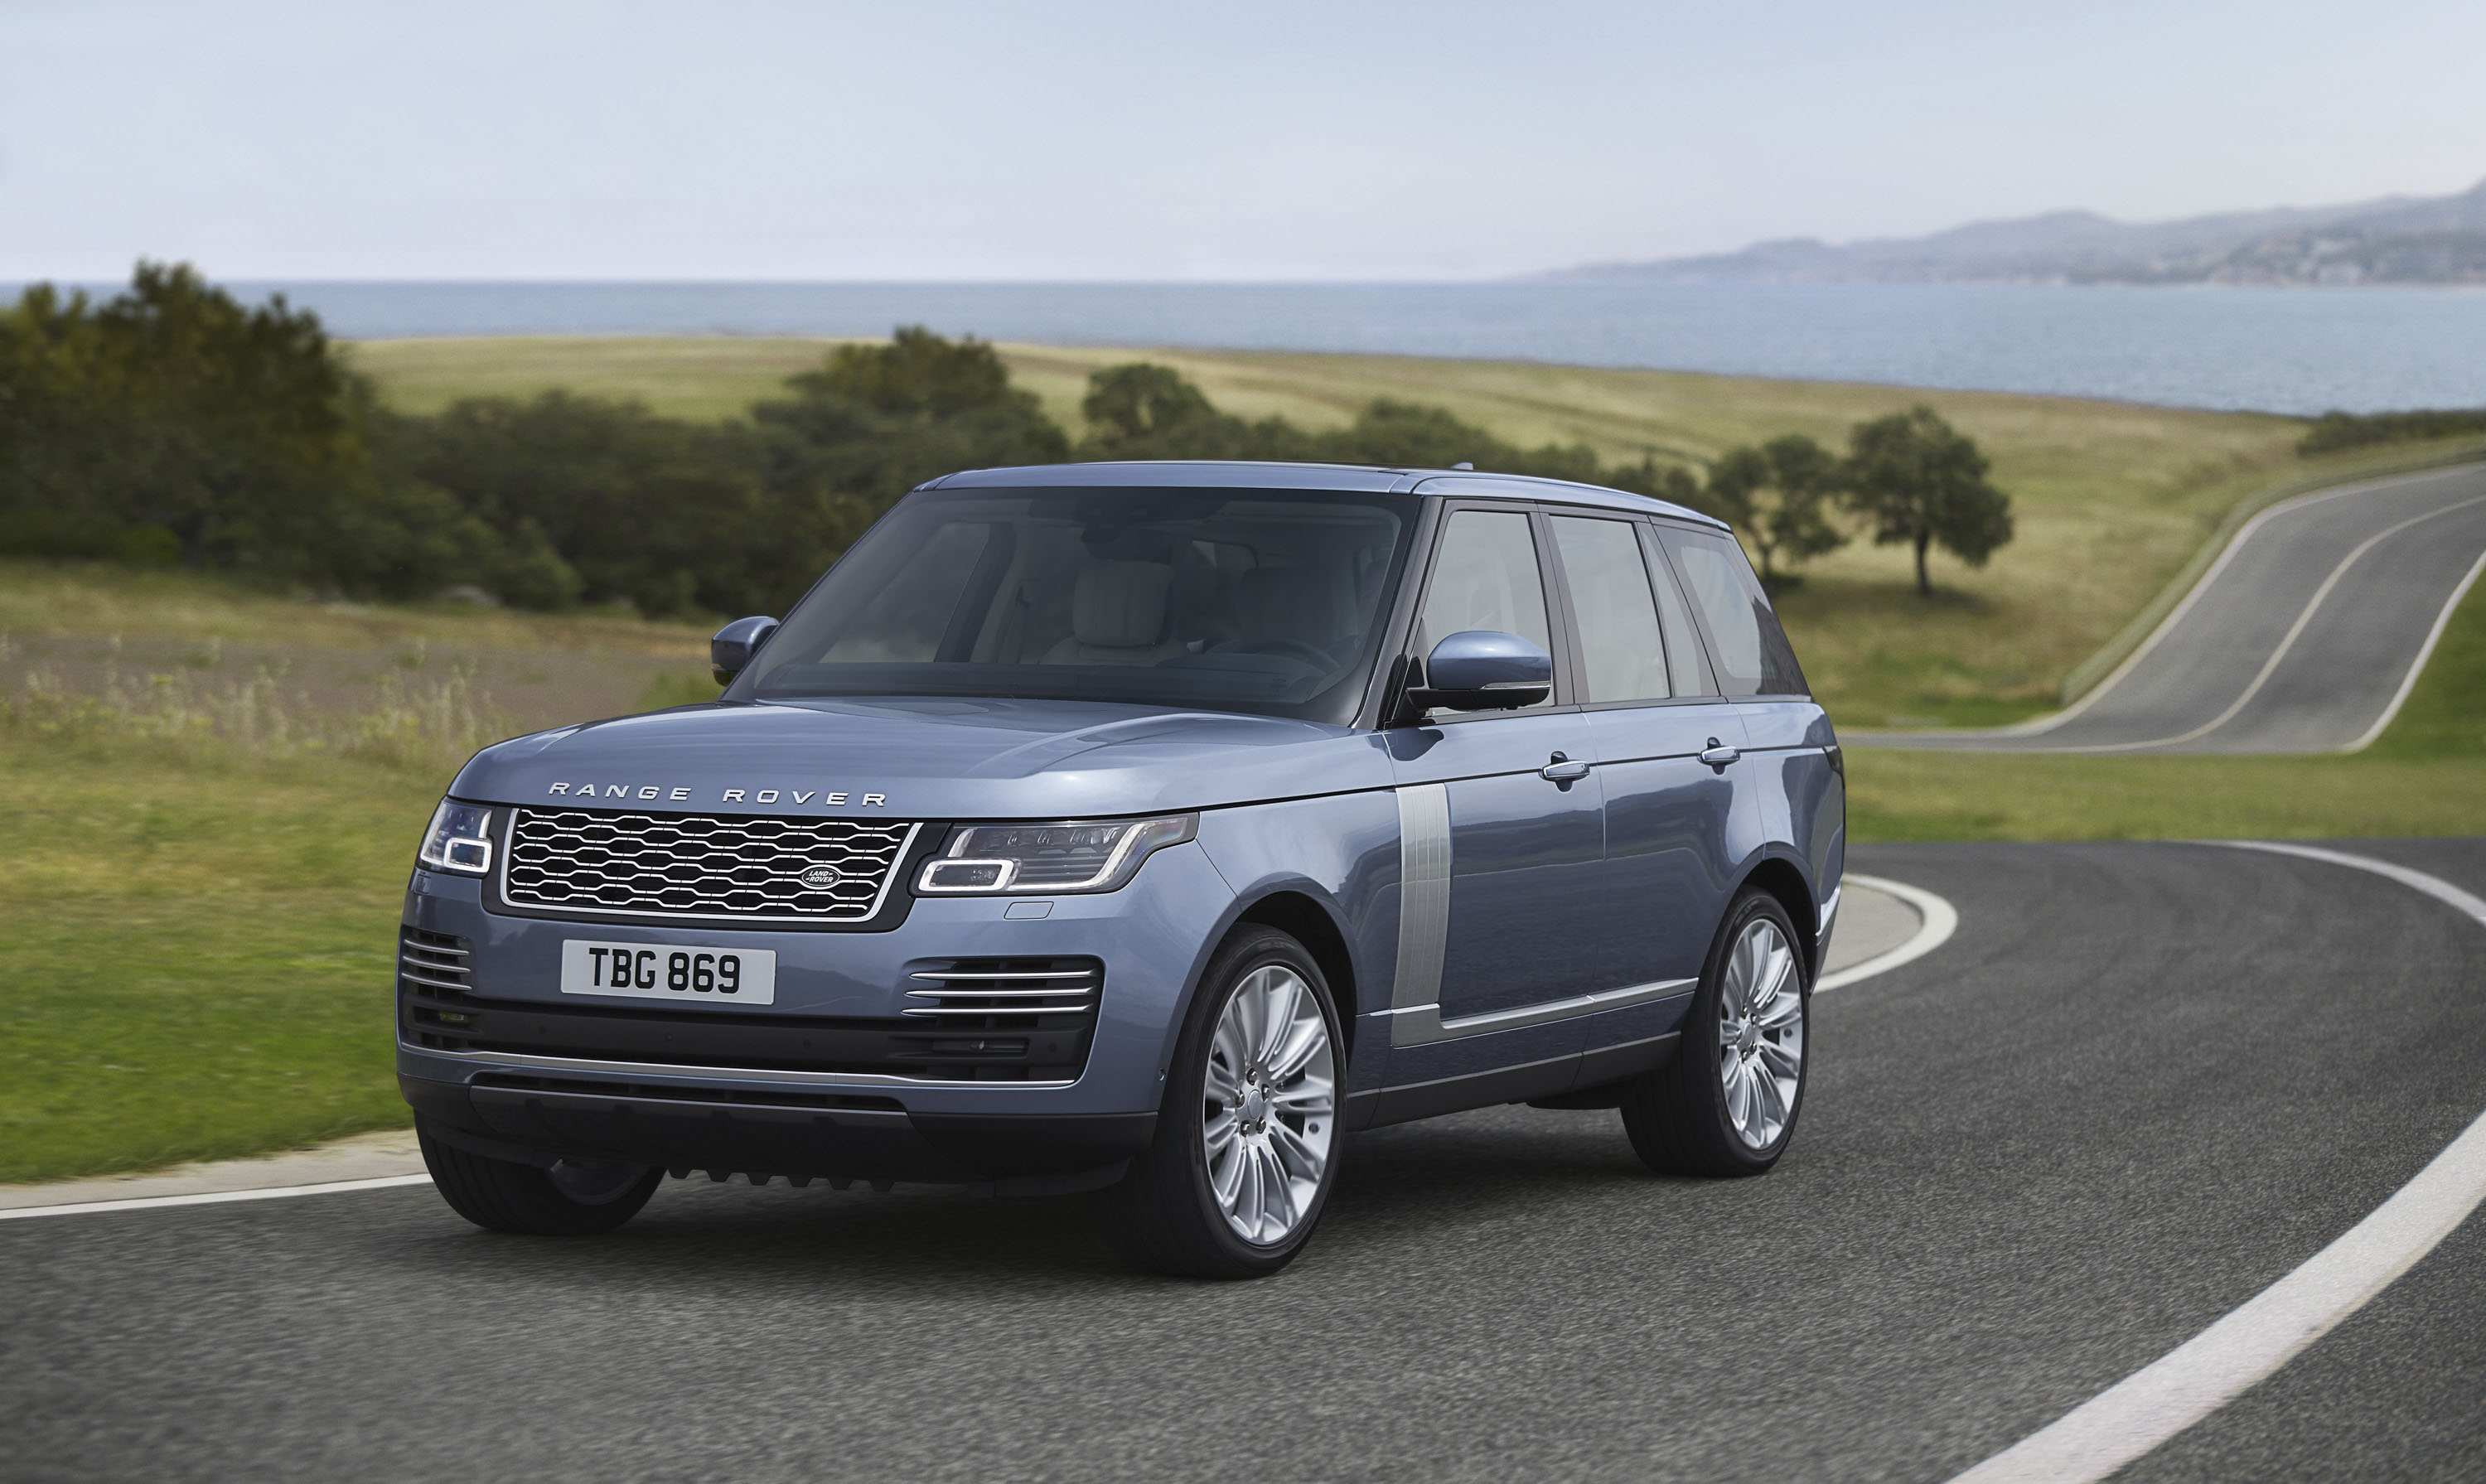 81 New Land Rover Range Rover Vogue 2019 Exterior with Land Rover Range Rover Vogue 2019